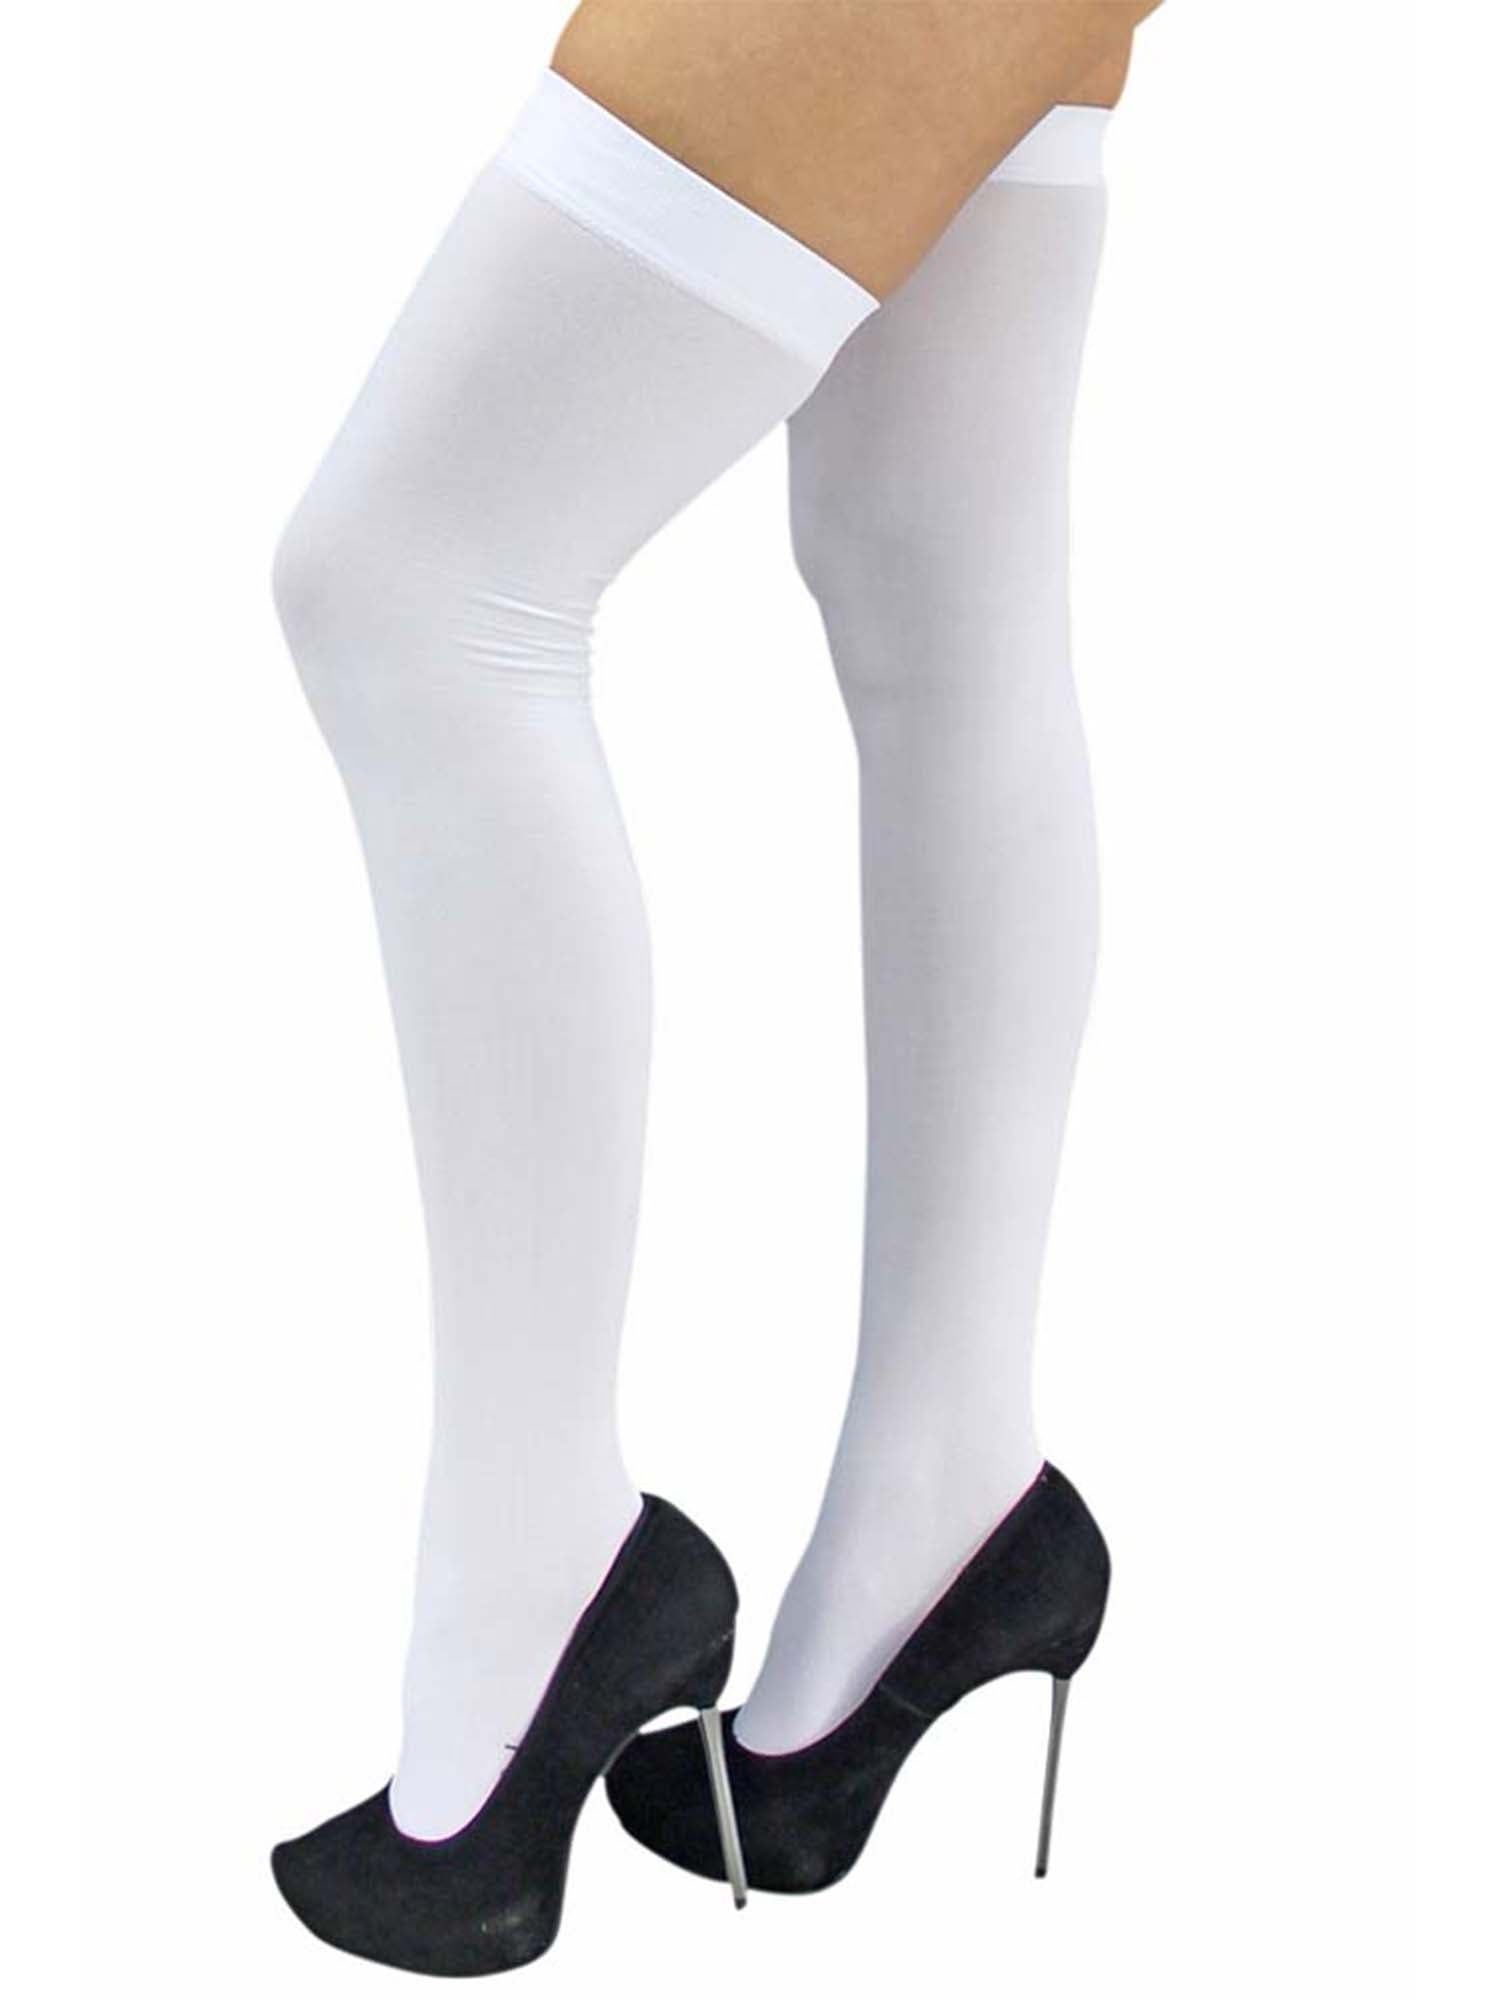 Black Opaque Thigh Highs One Size Fits Most Womens Opaque Thigh Highs